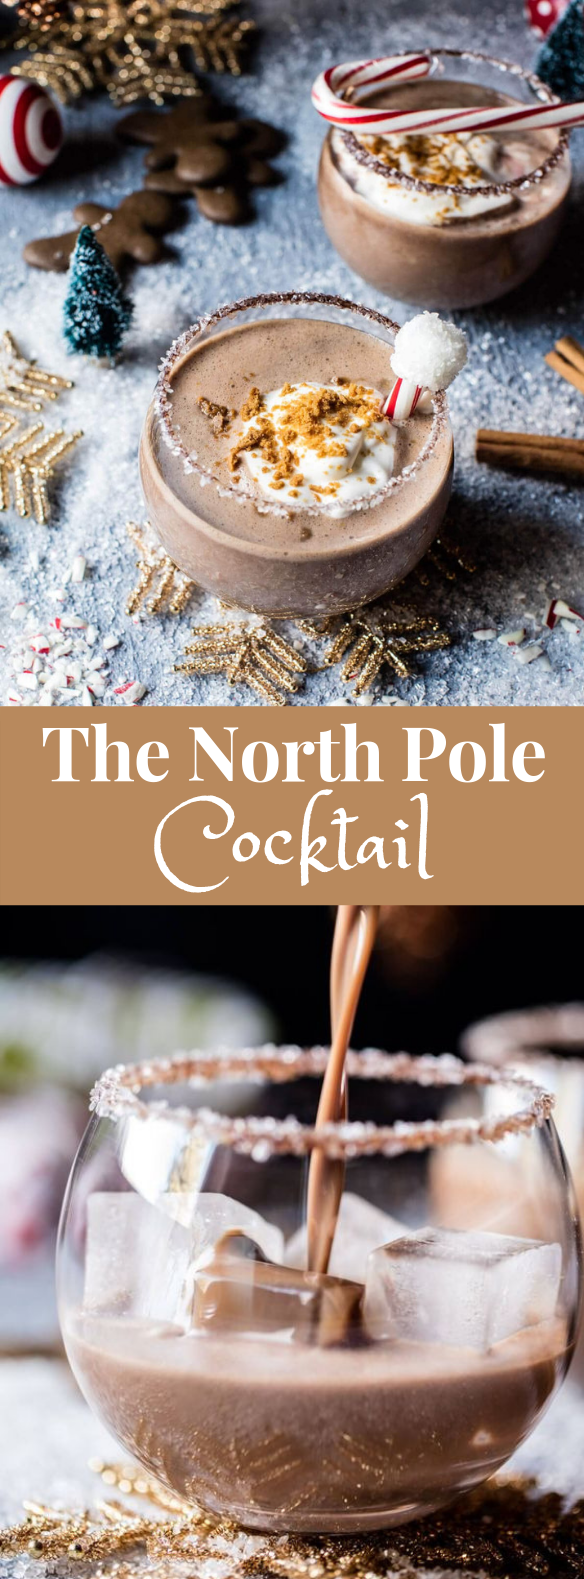 the north pole cocktail #Cocktail #MixedDrink